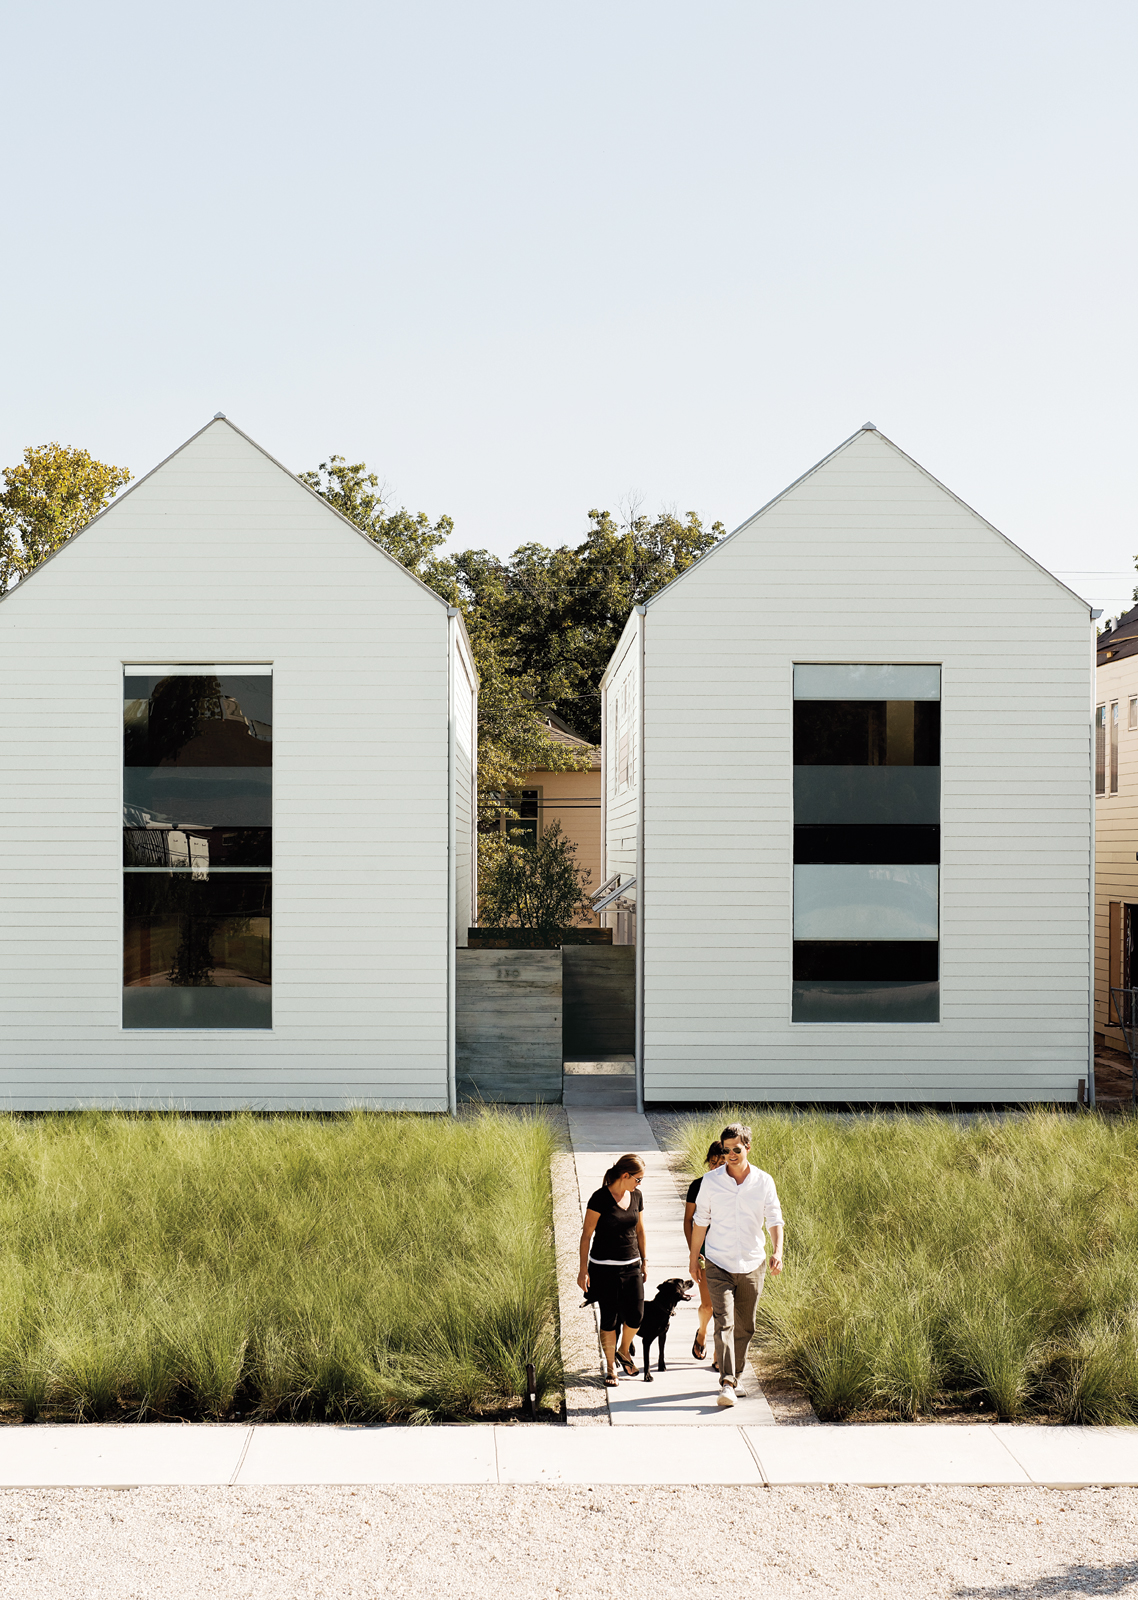 Affordable mini houses in the Houston Heights 13